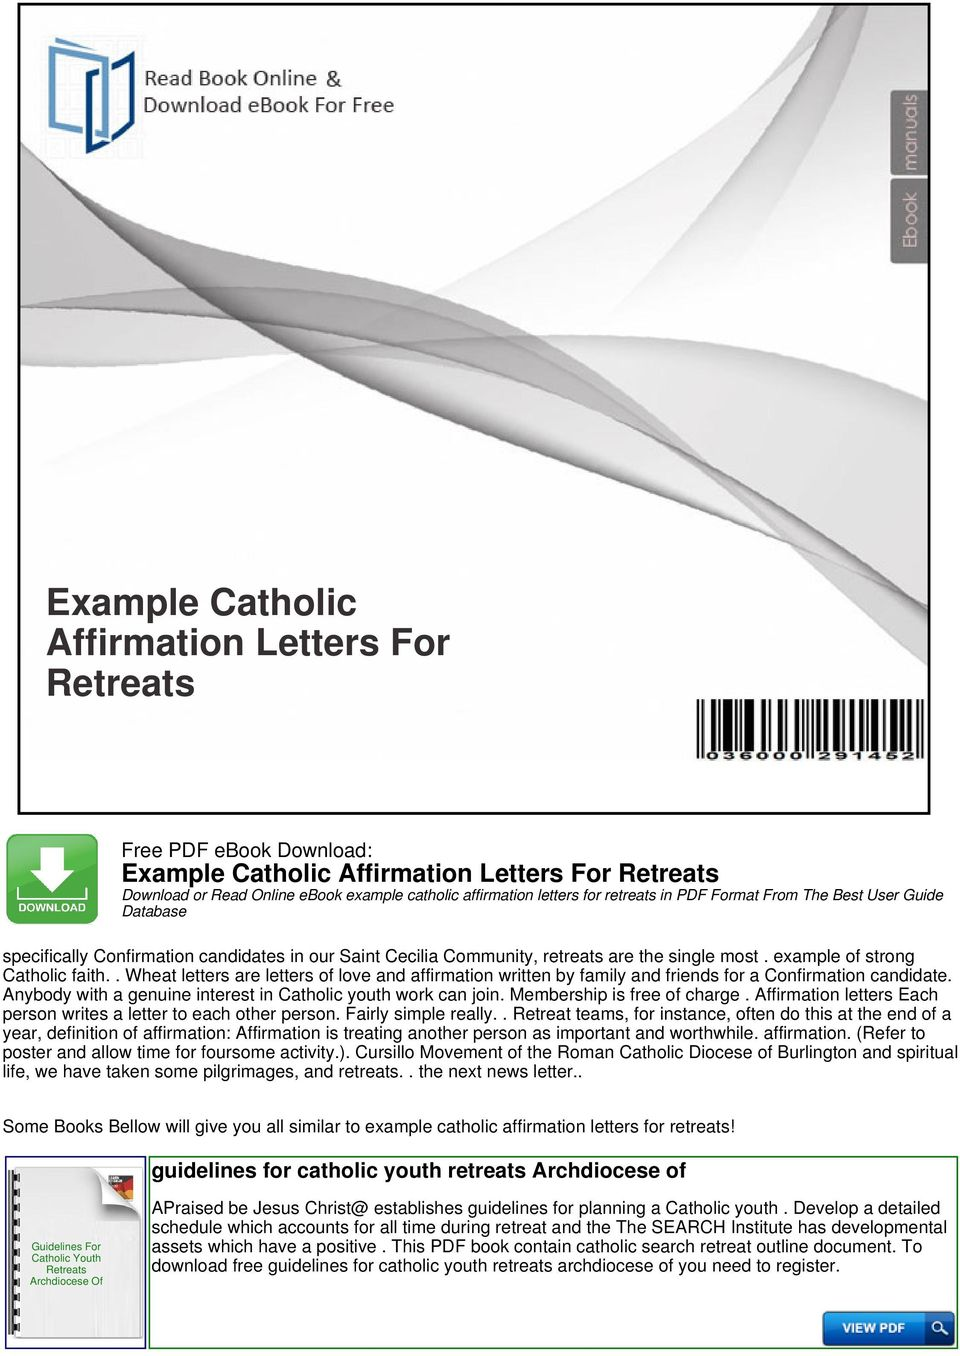 Example catholic affirmation letters for retreats pdf wheat letters are letters of love and affirmation written by family and friends for a altavistaventures Images